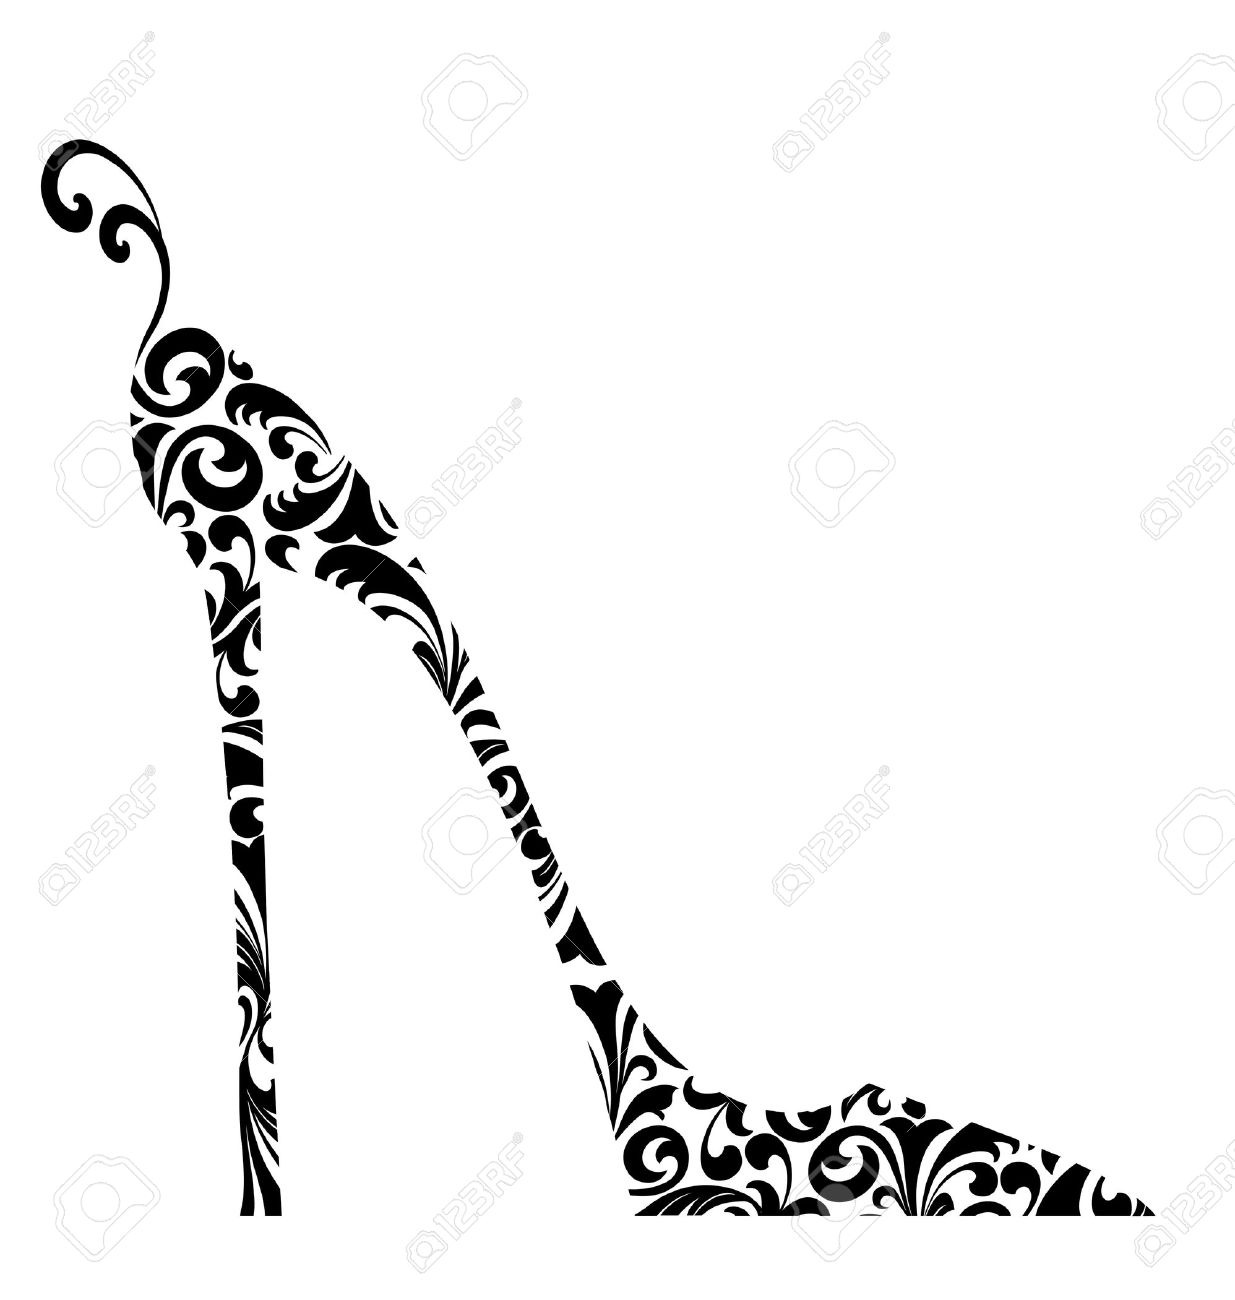 Cute retro fashion illustration of a high-heeled shoe with curlicues Stock Photo - 10395210